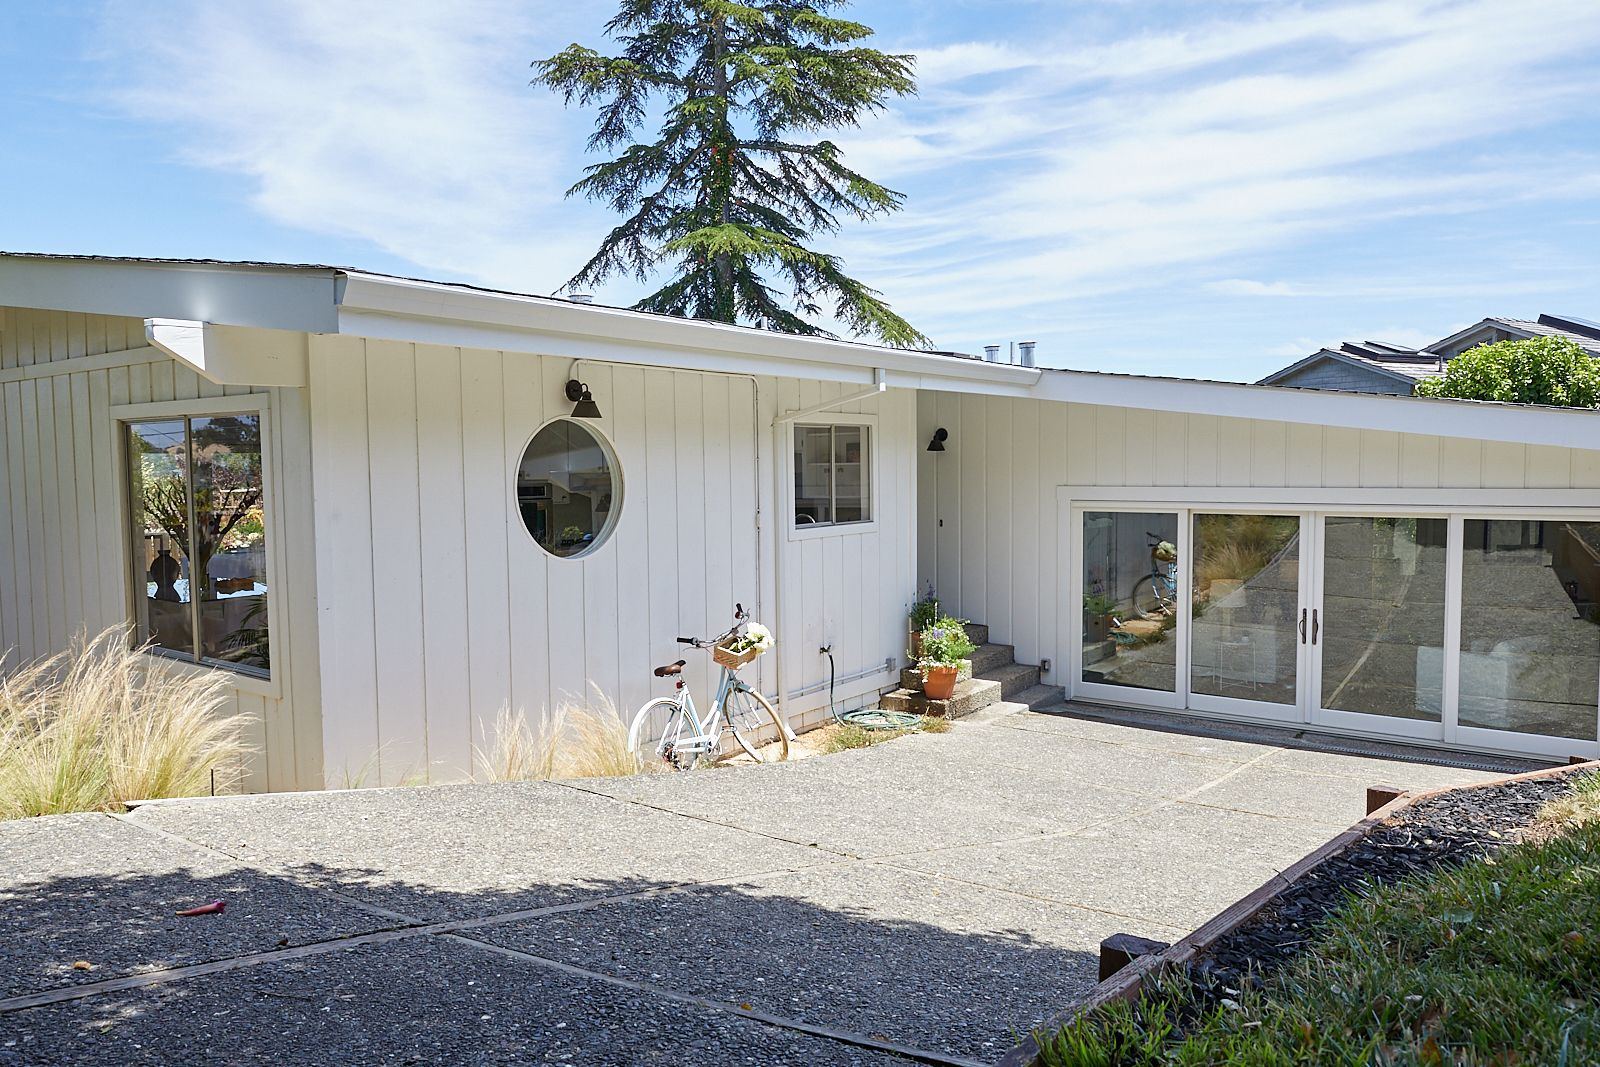 125 Highland Lane, Mill Valley - single-level, tons of natural light, mid-century lines, outdoor space, and a California farmhouse feeling.3bd / 2ba / 1,945 sqft home / 7,840 sqft lot$1,595,000